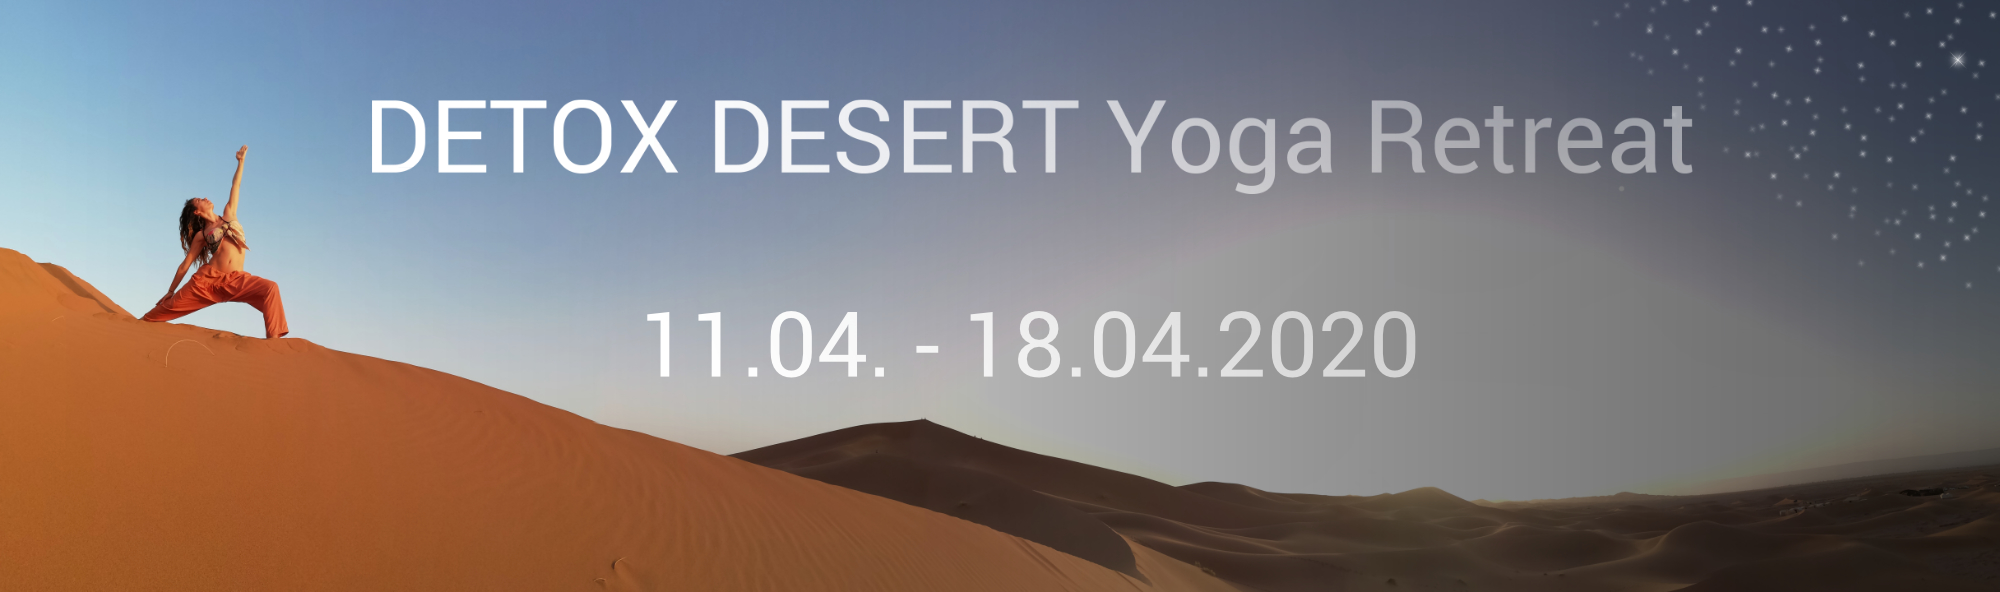 Warrior I yoga pose in the desert day and night